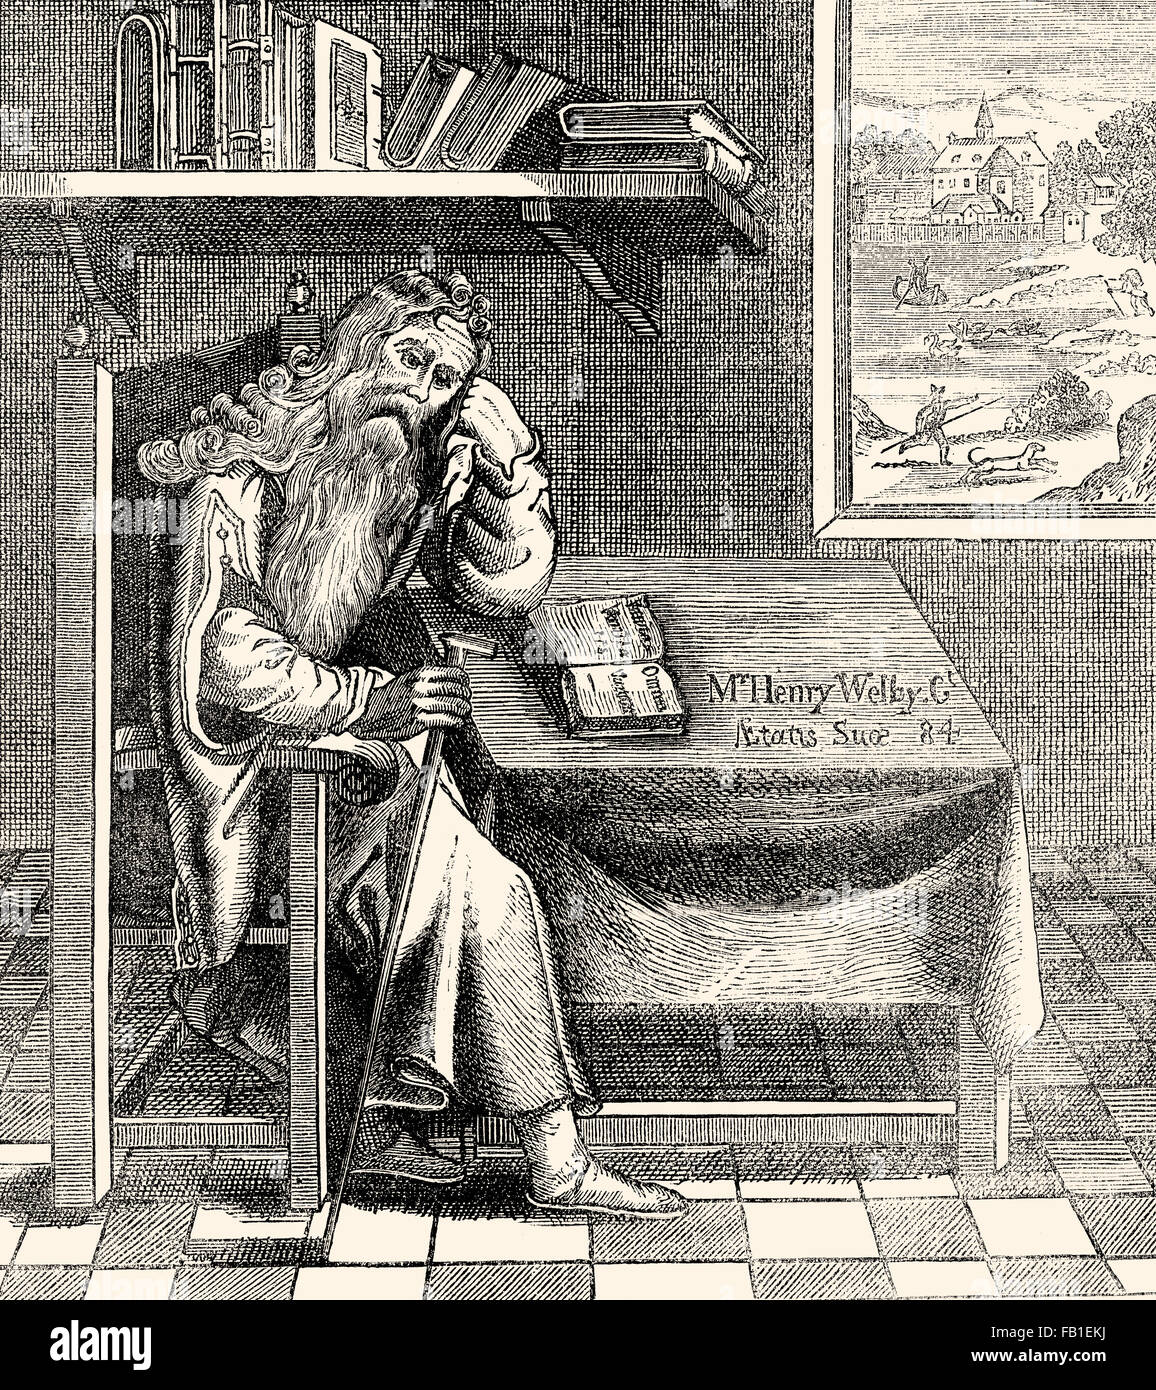 The Hermit of Grub Street, London, c. 1700 - Stock Image